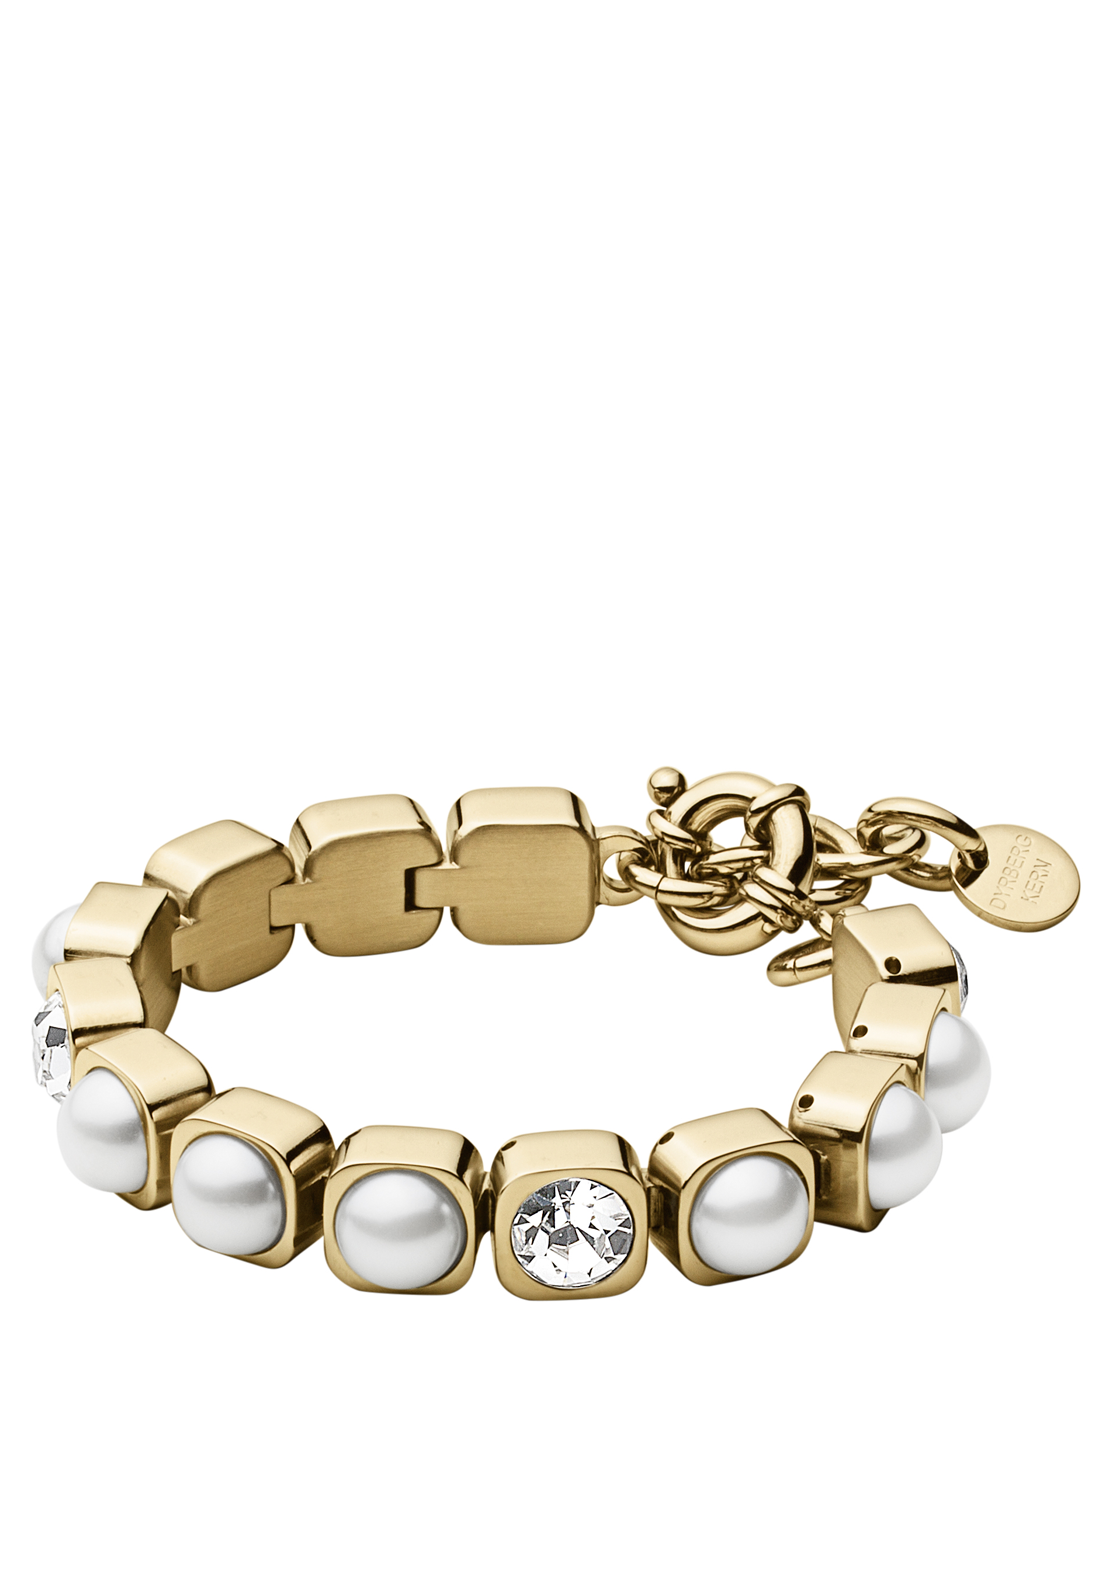 Dyrberg Kern Coco White Faux Pearl Bracelet with Swarovski Elements, Gold